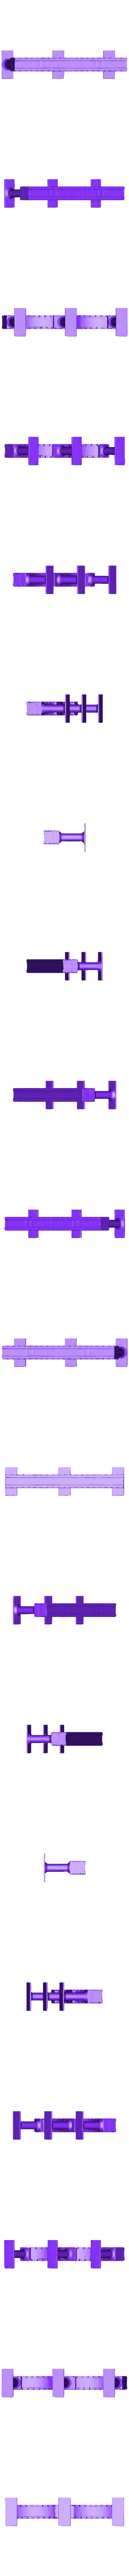 OpenForge_with_Pillars_and_Arch_4inStraight_pillars_only.obj Download free OBJ file Dungeons Tile Set • 3D printing object, 3DRune